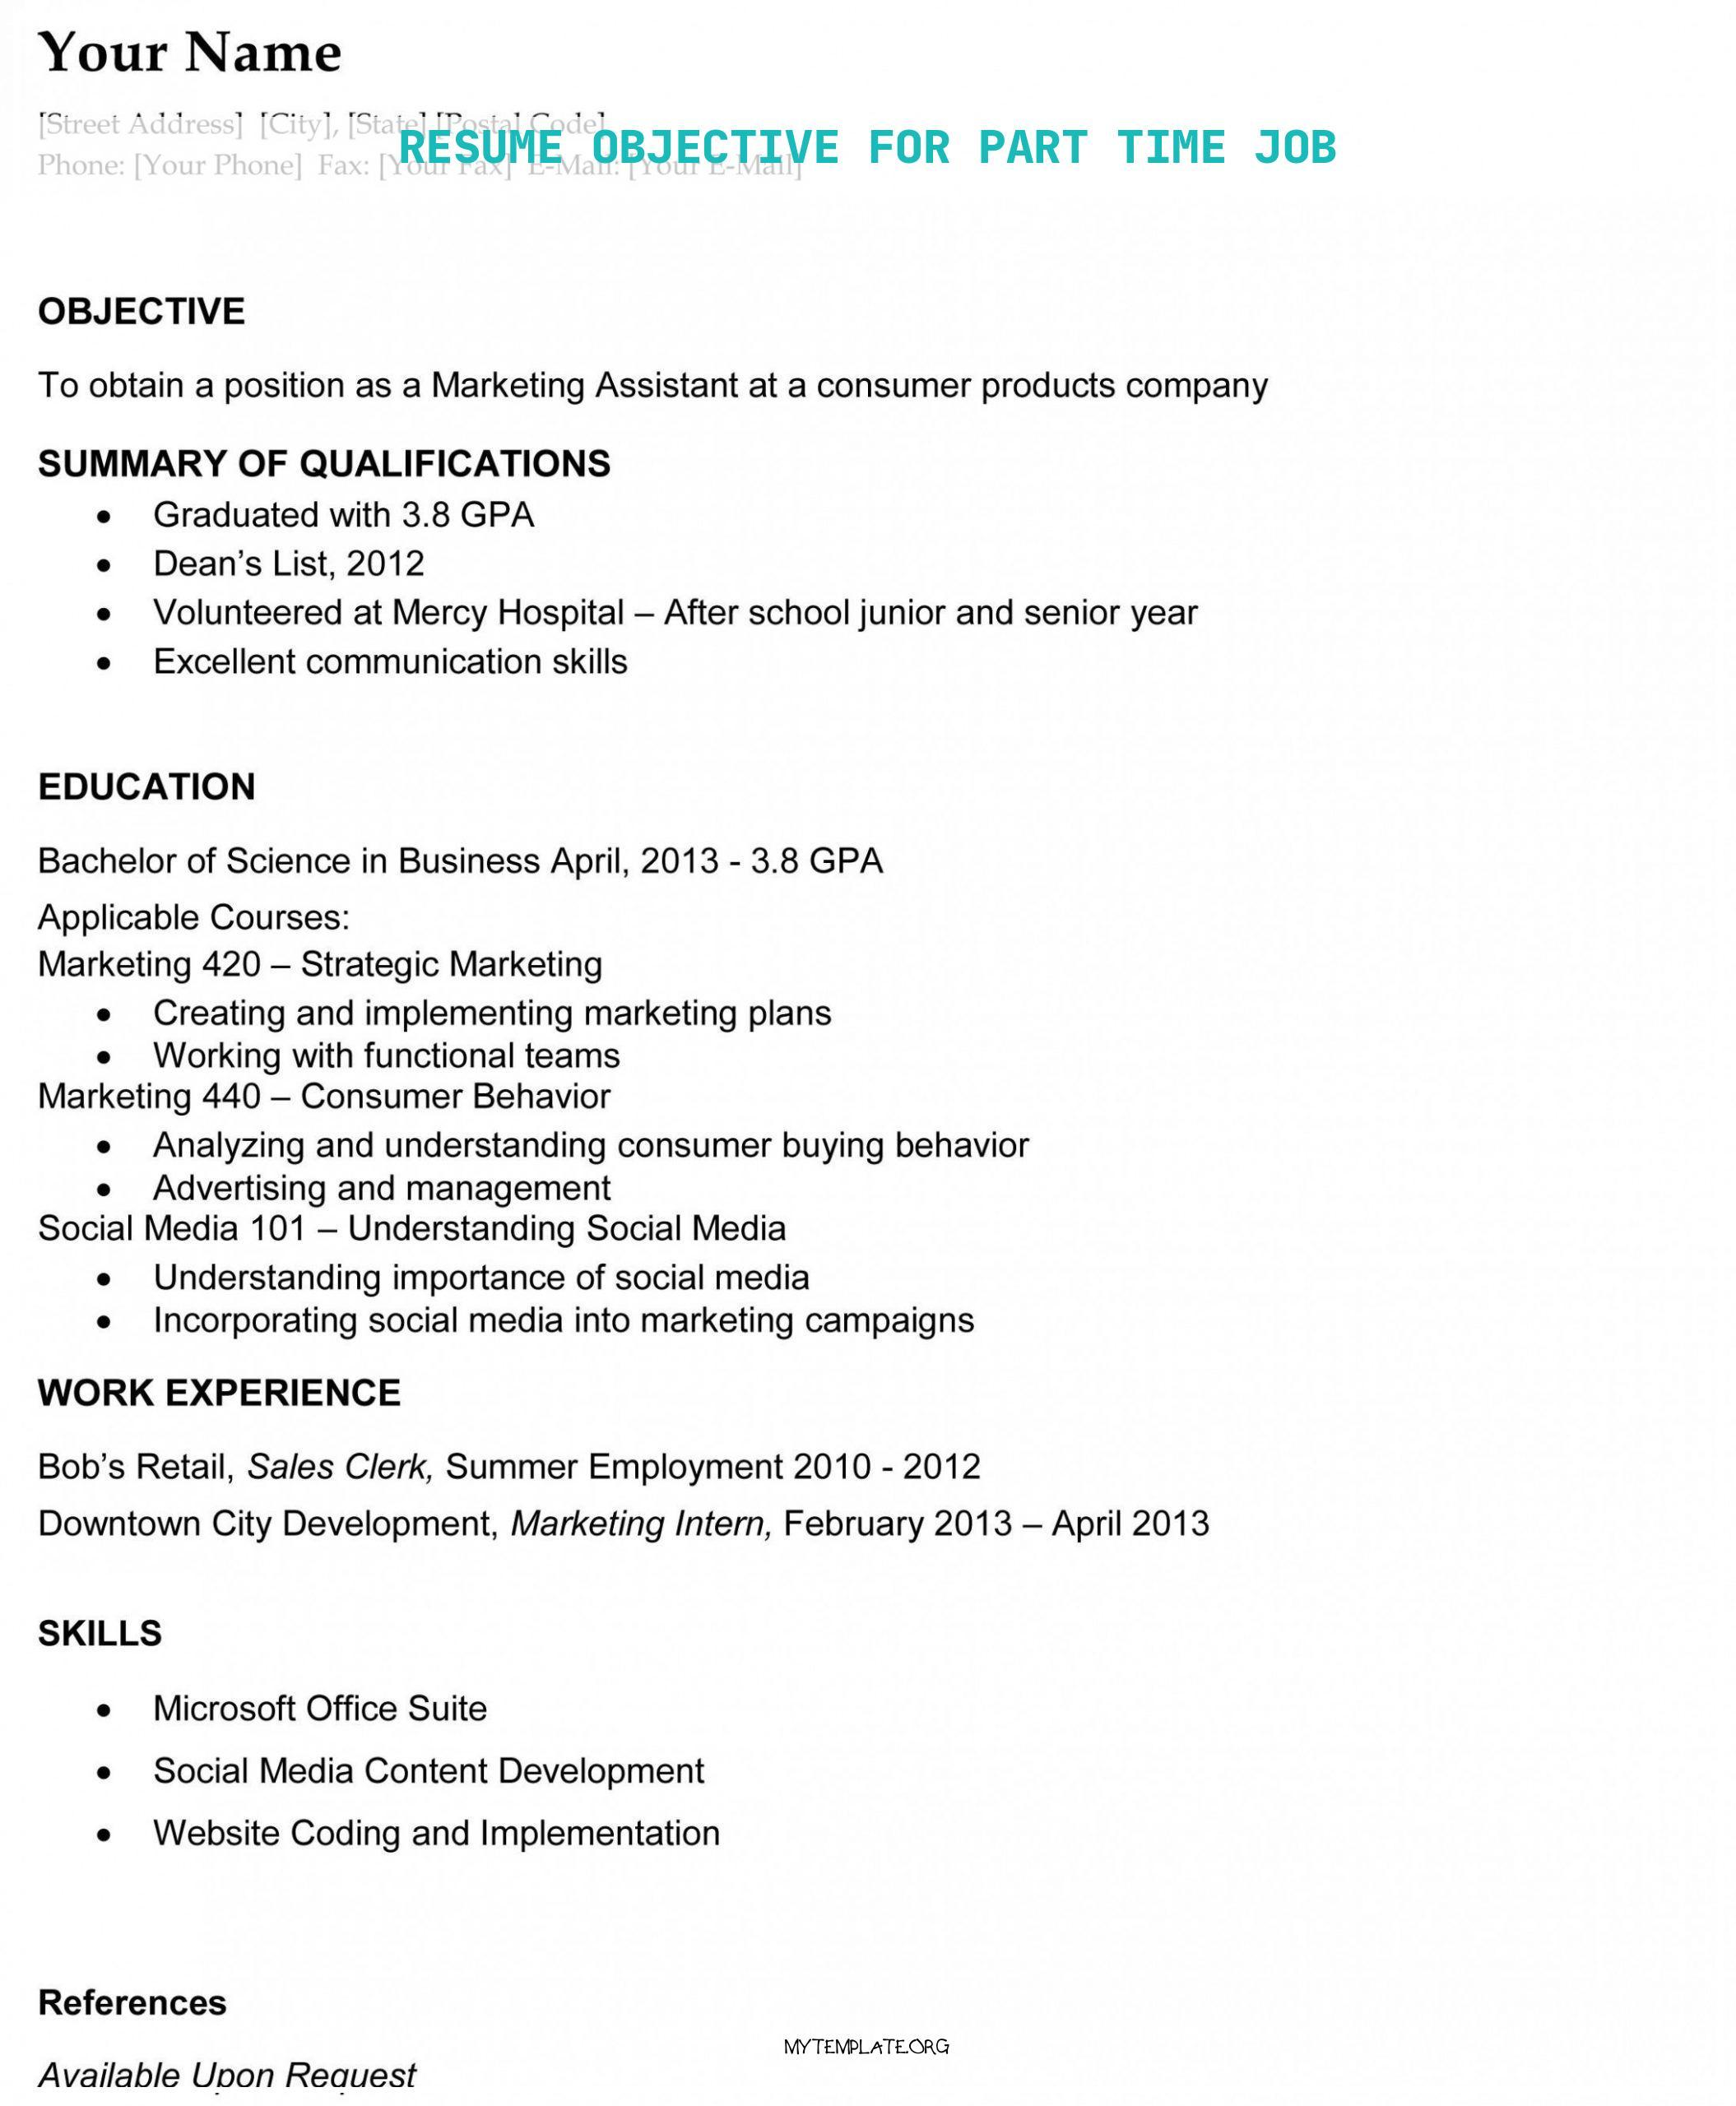 resume objective for part time job free templates media of goal school pupil pin now cost Resume Objective For Media Resume